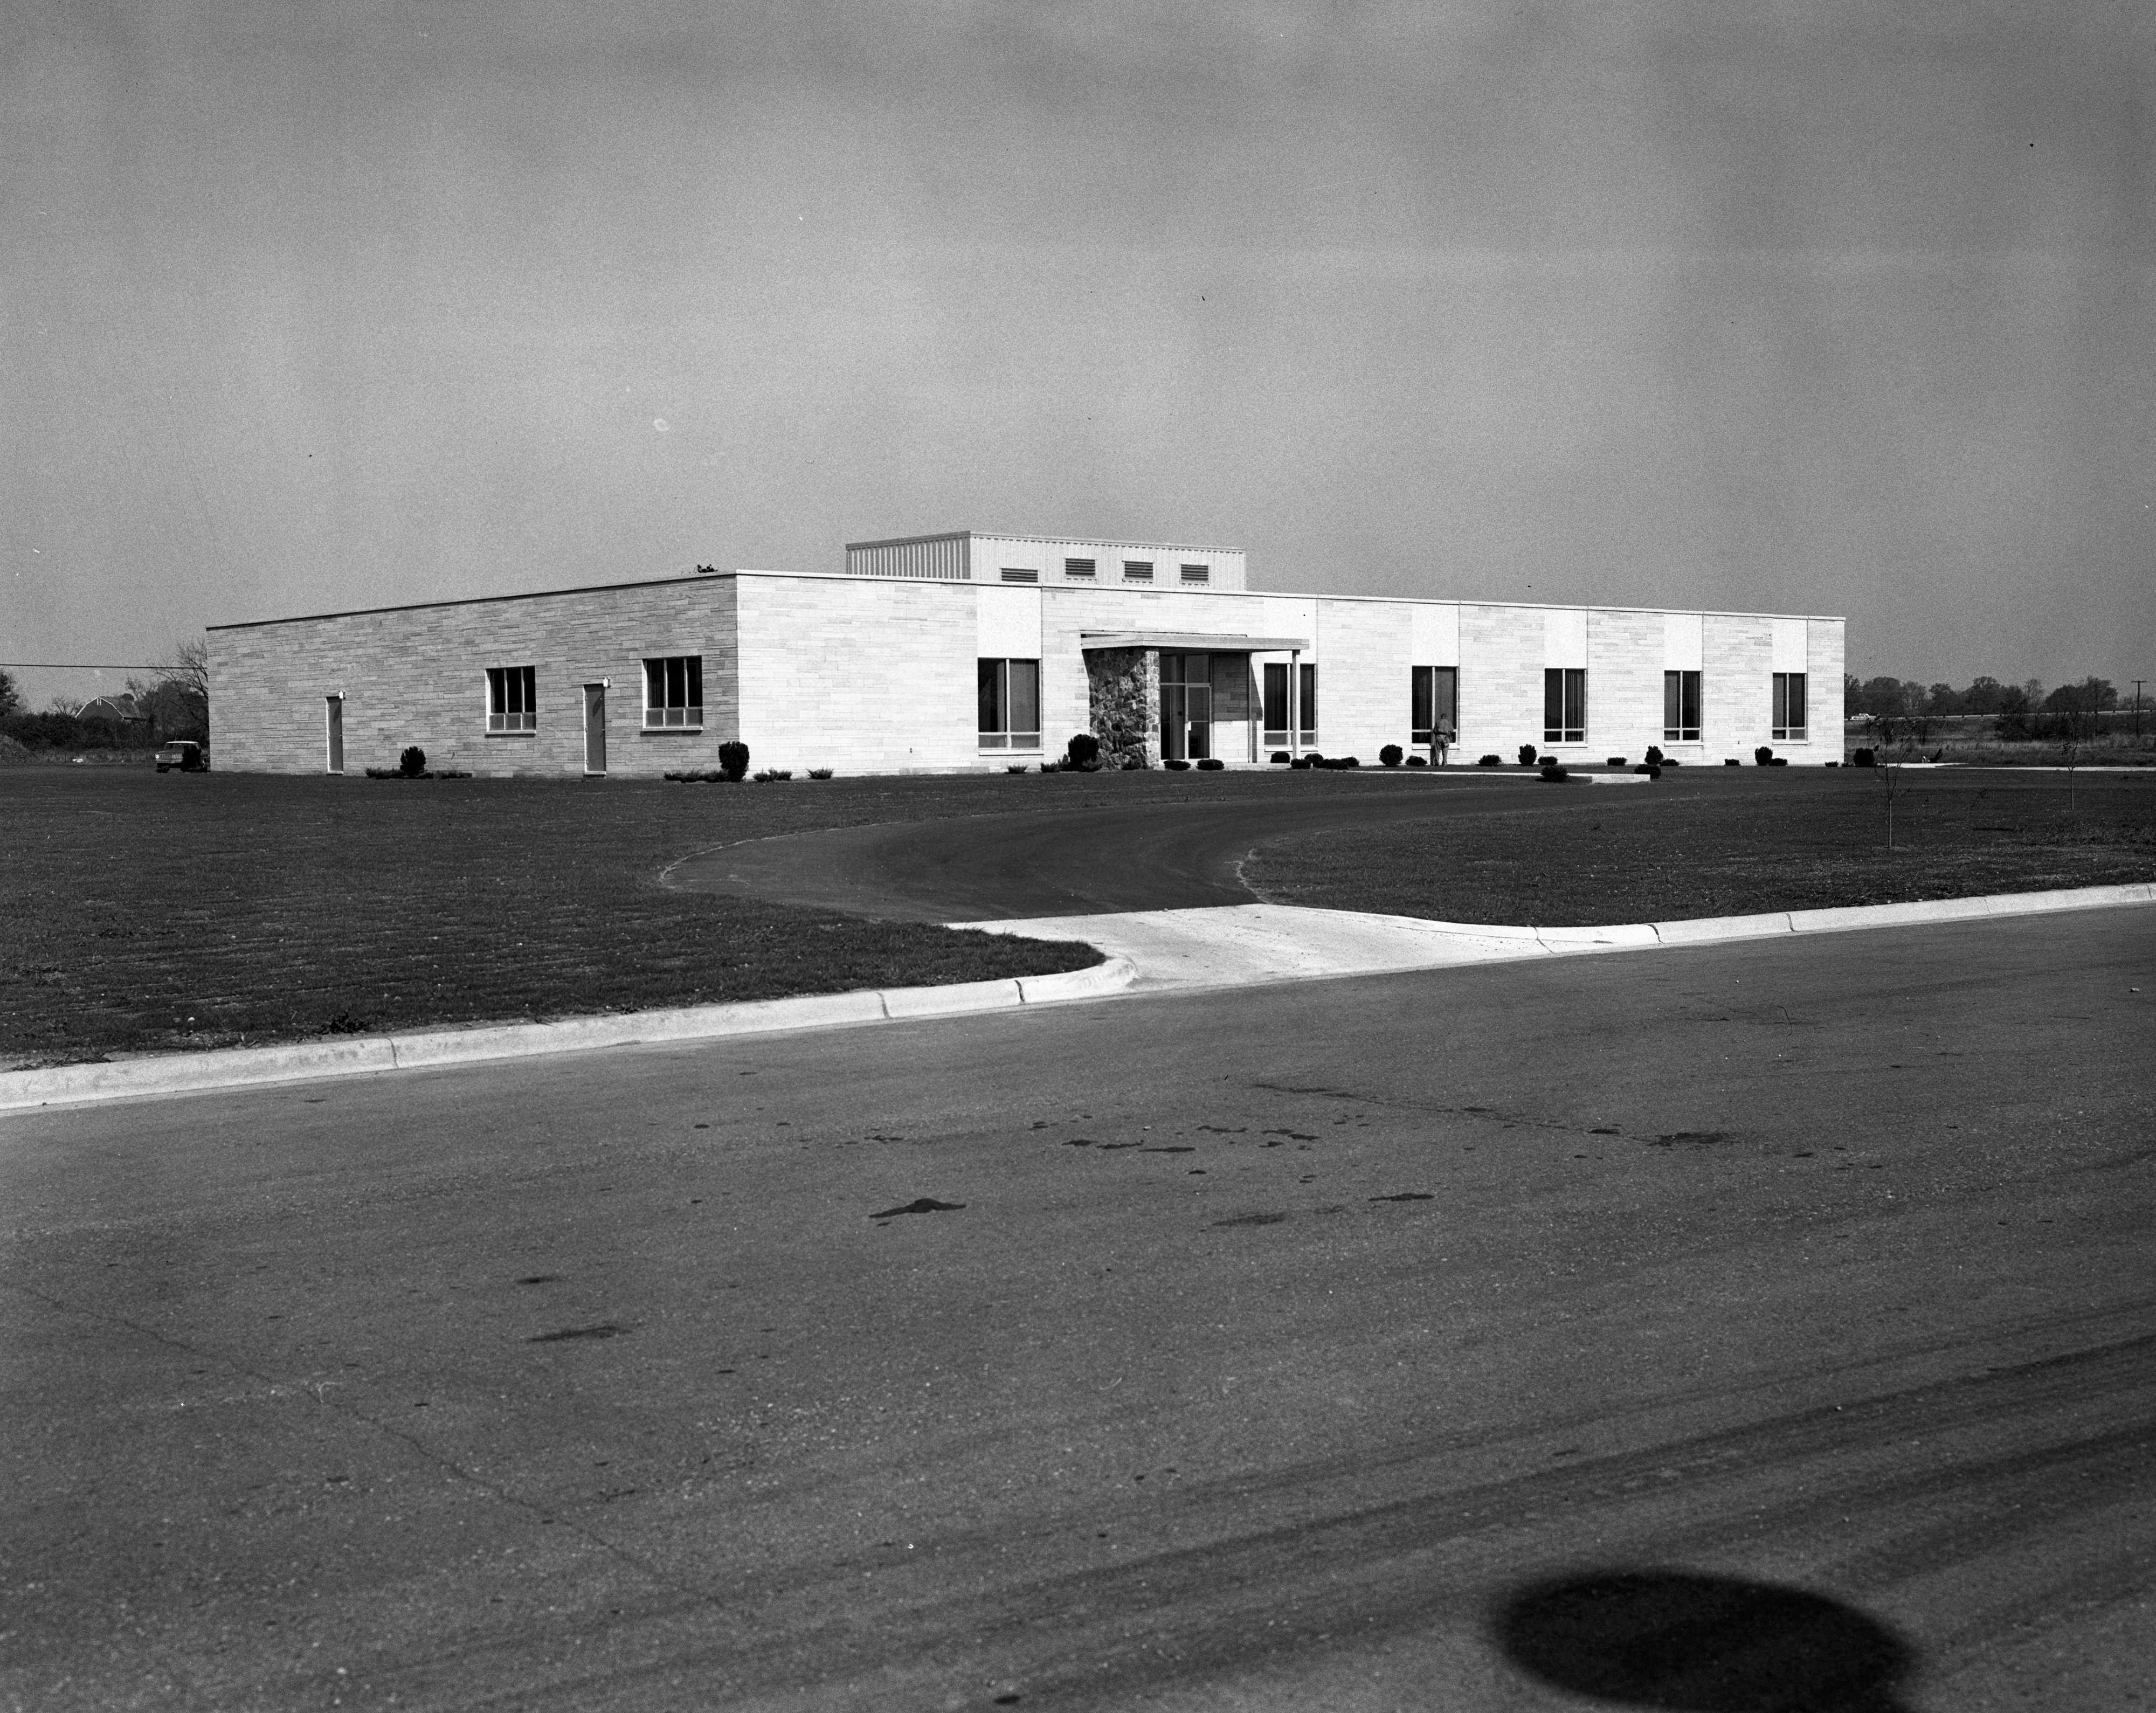 Tecumseh Products New Research Laboratory In Ann Arbor Research Park, October 1964 image